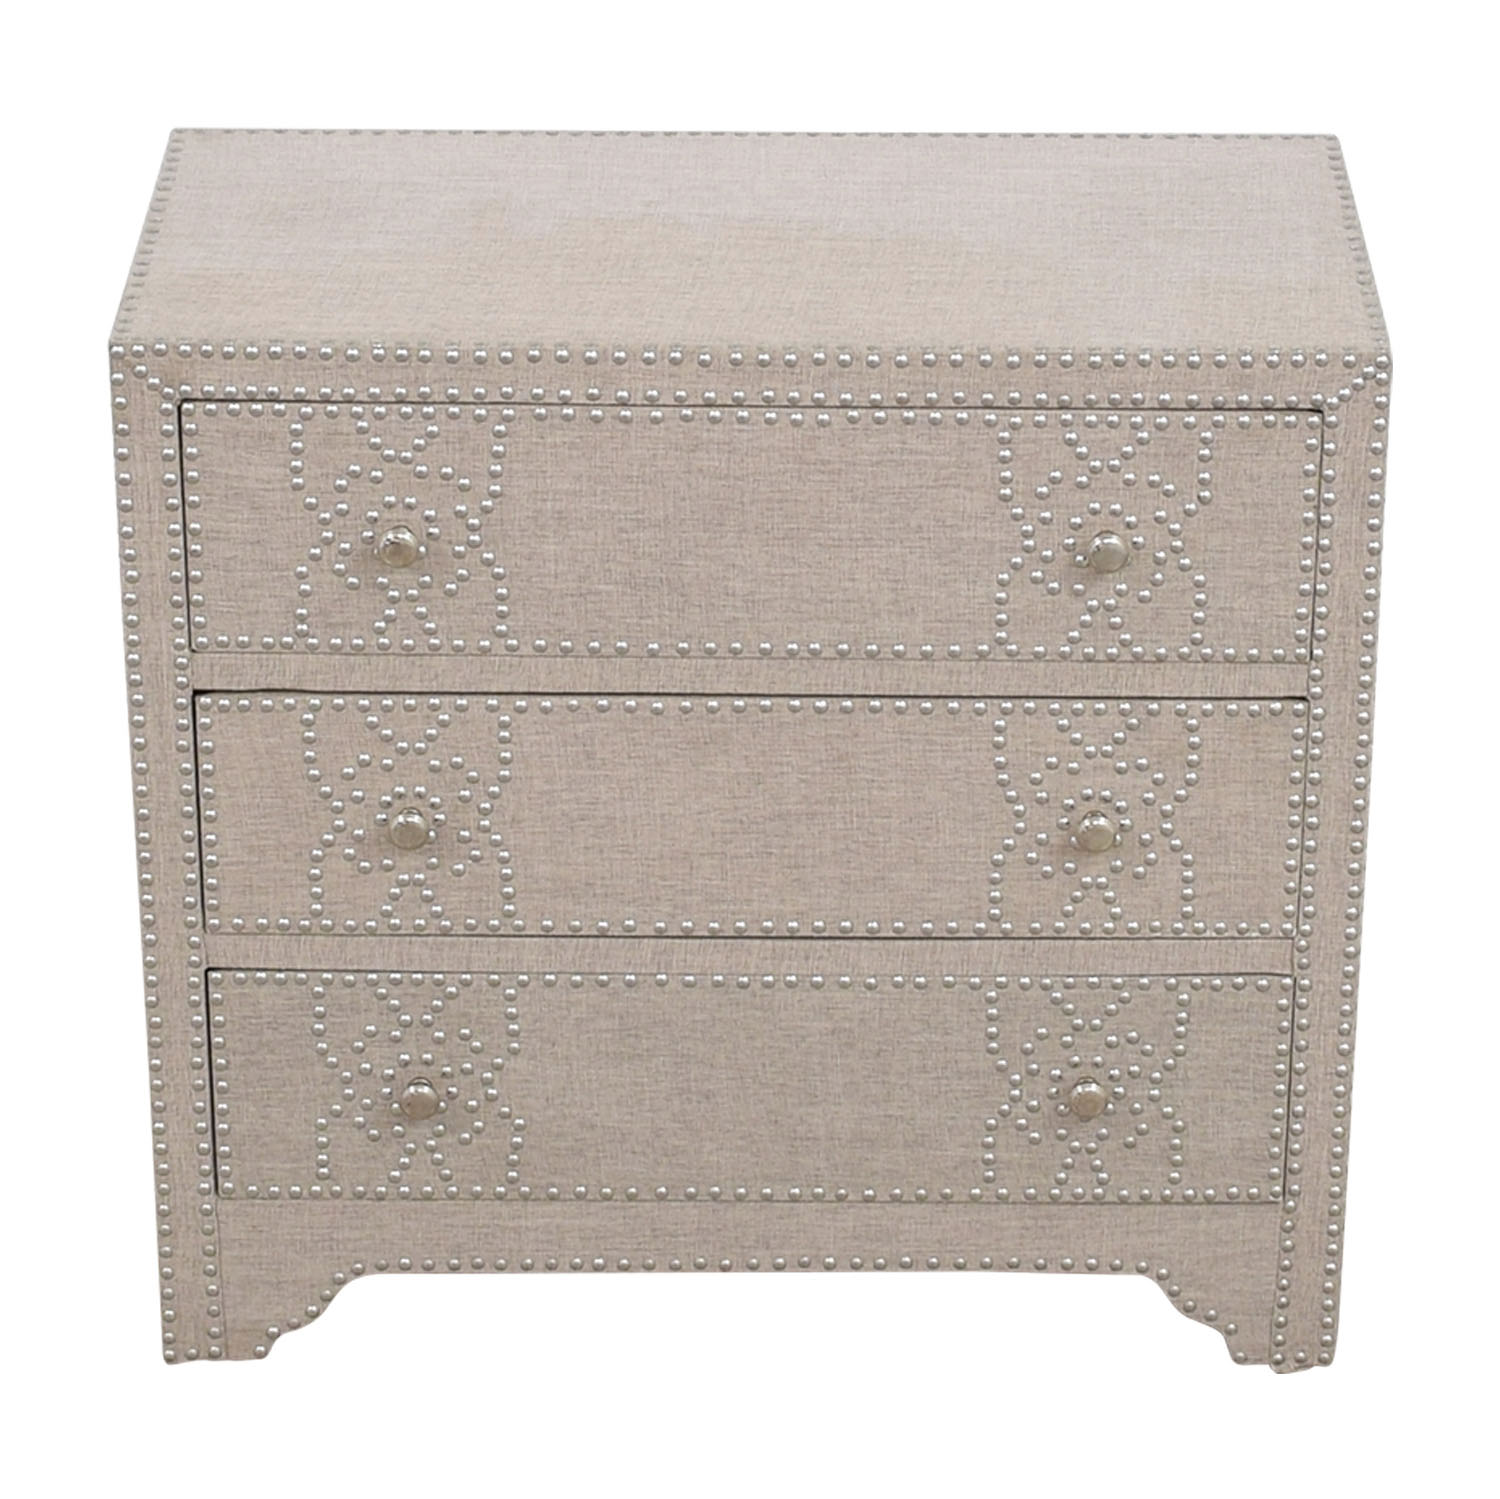 Pier 1 Imports Pier 1 Import Grey Fabric Lexford Chest with Nailheads price